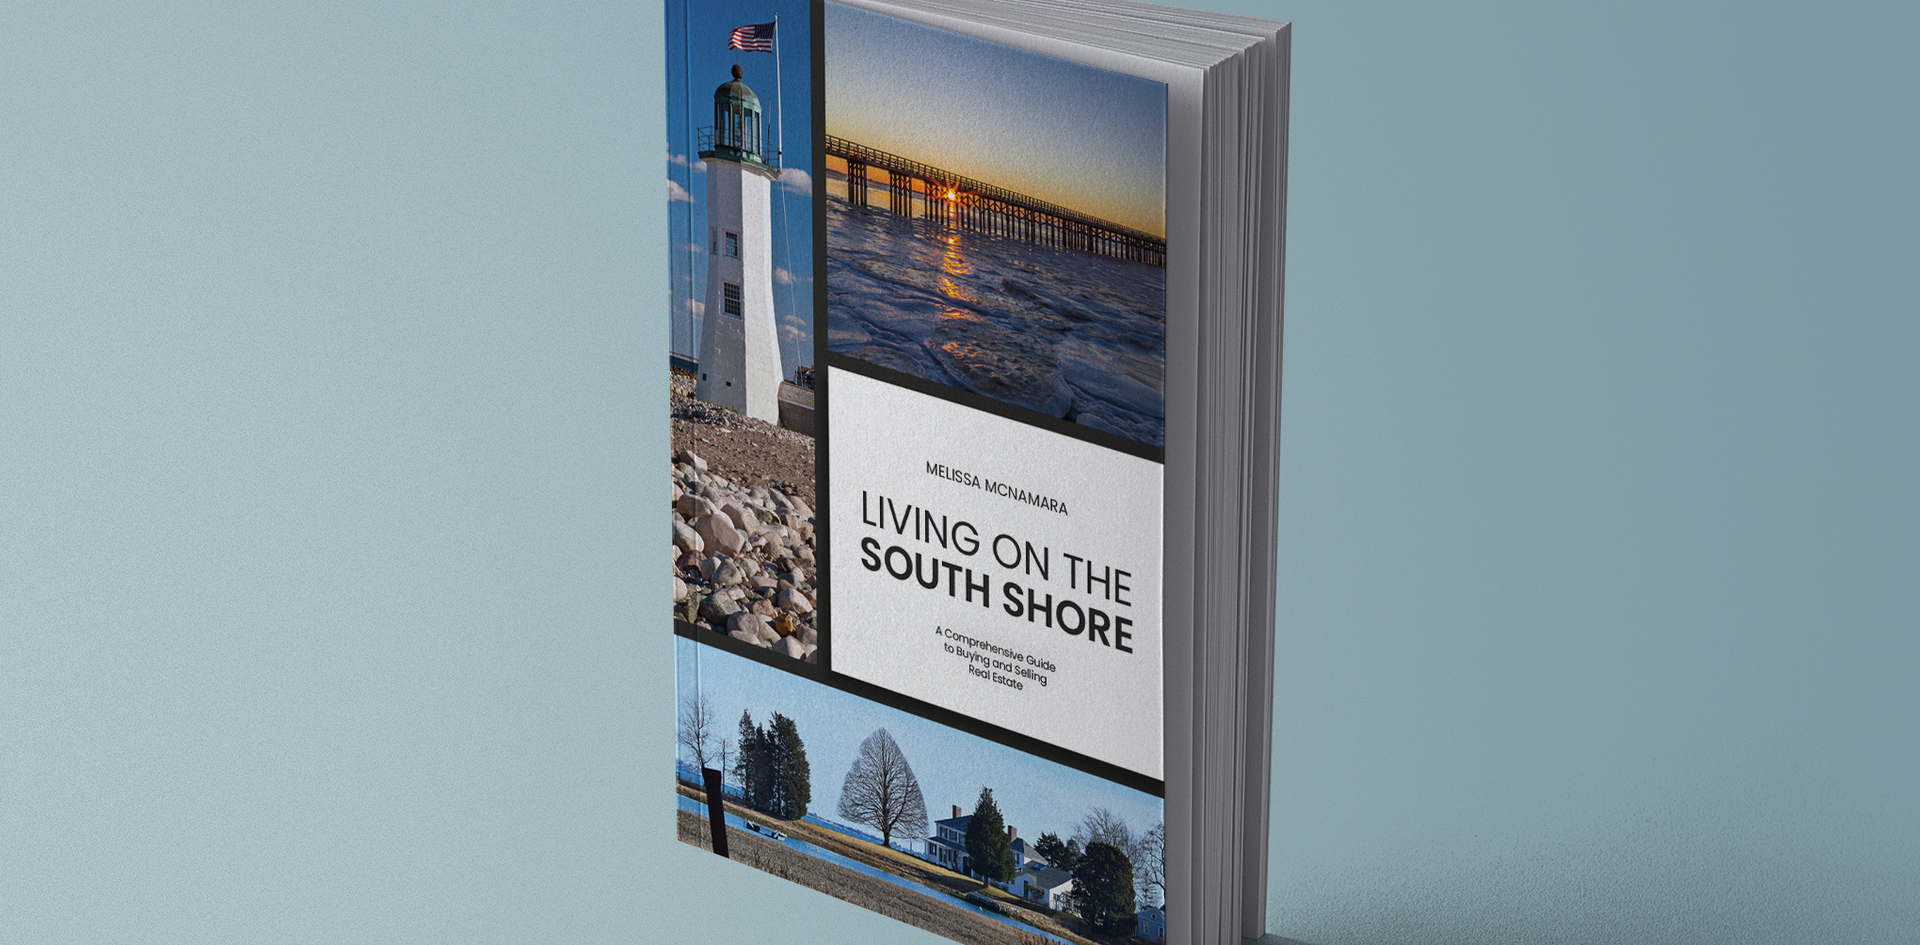 Living on the South Shore - Final 1.0 -